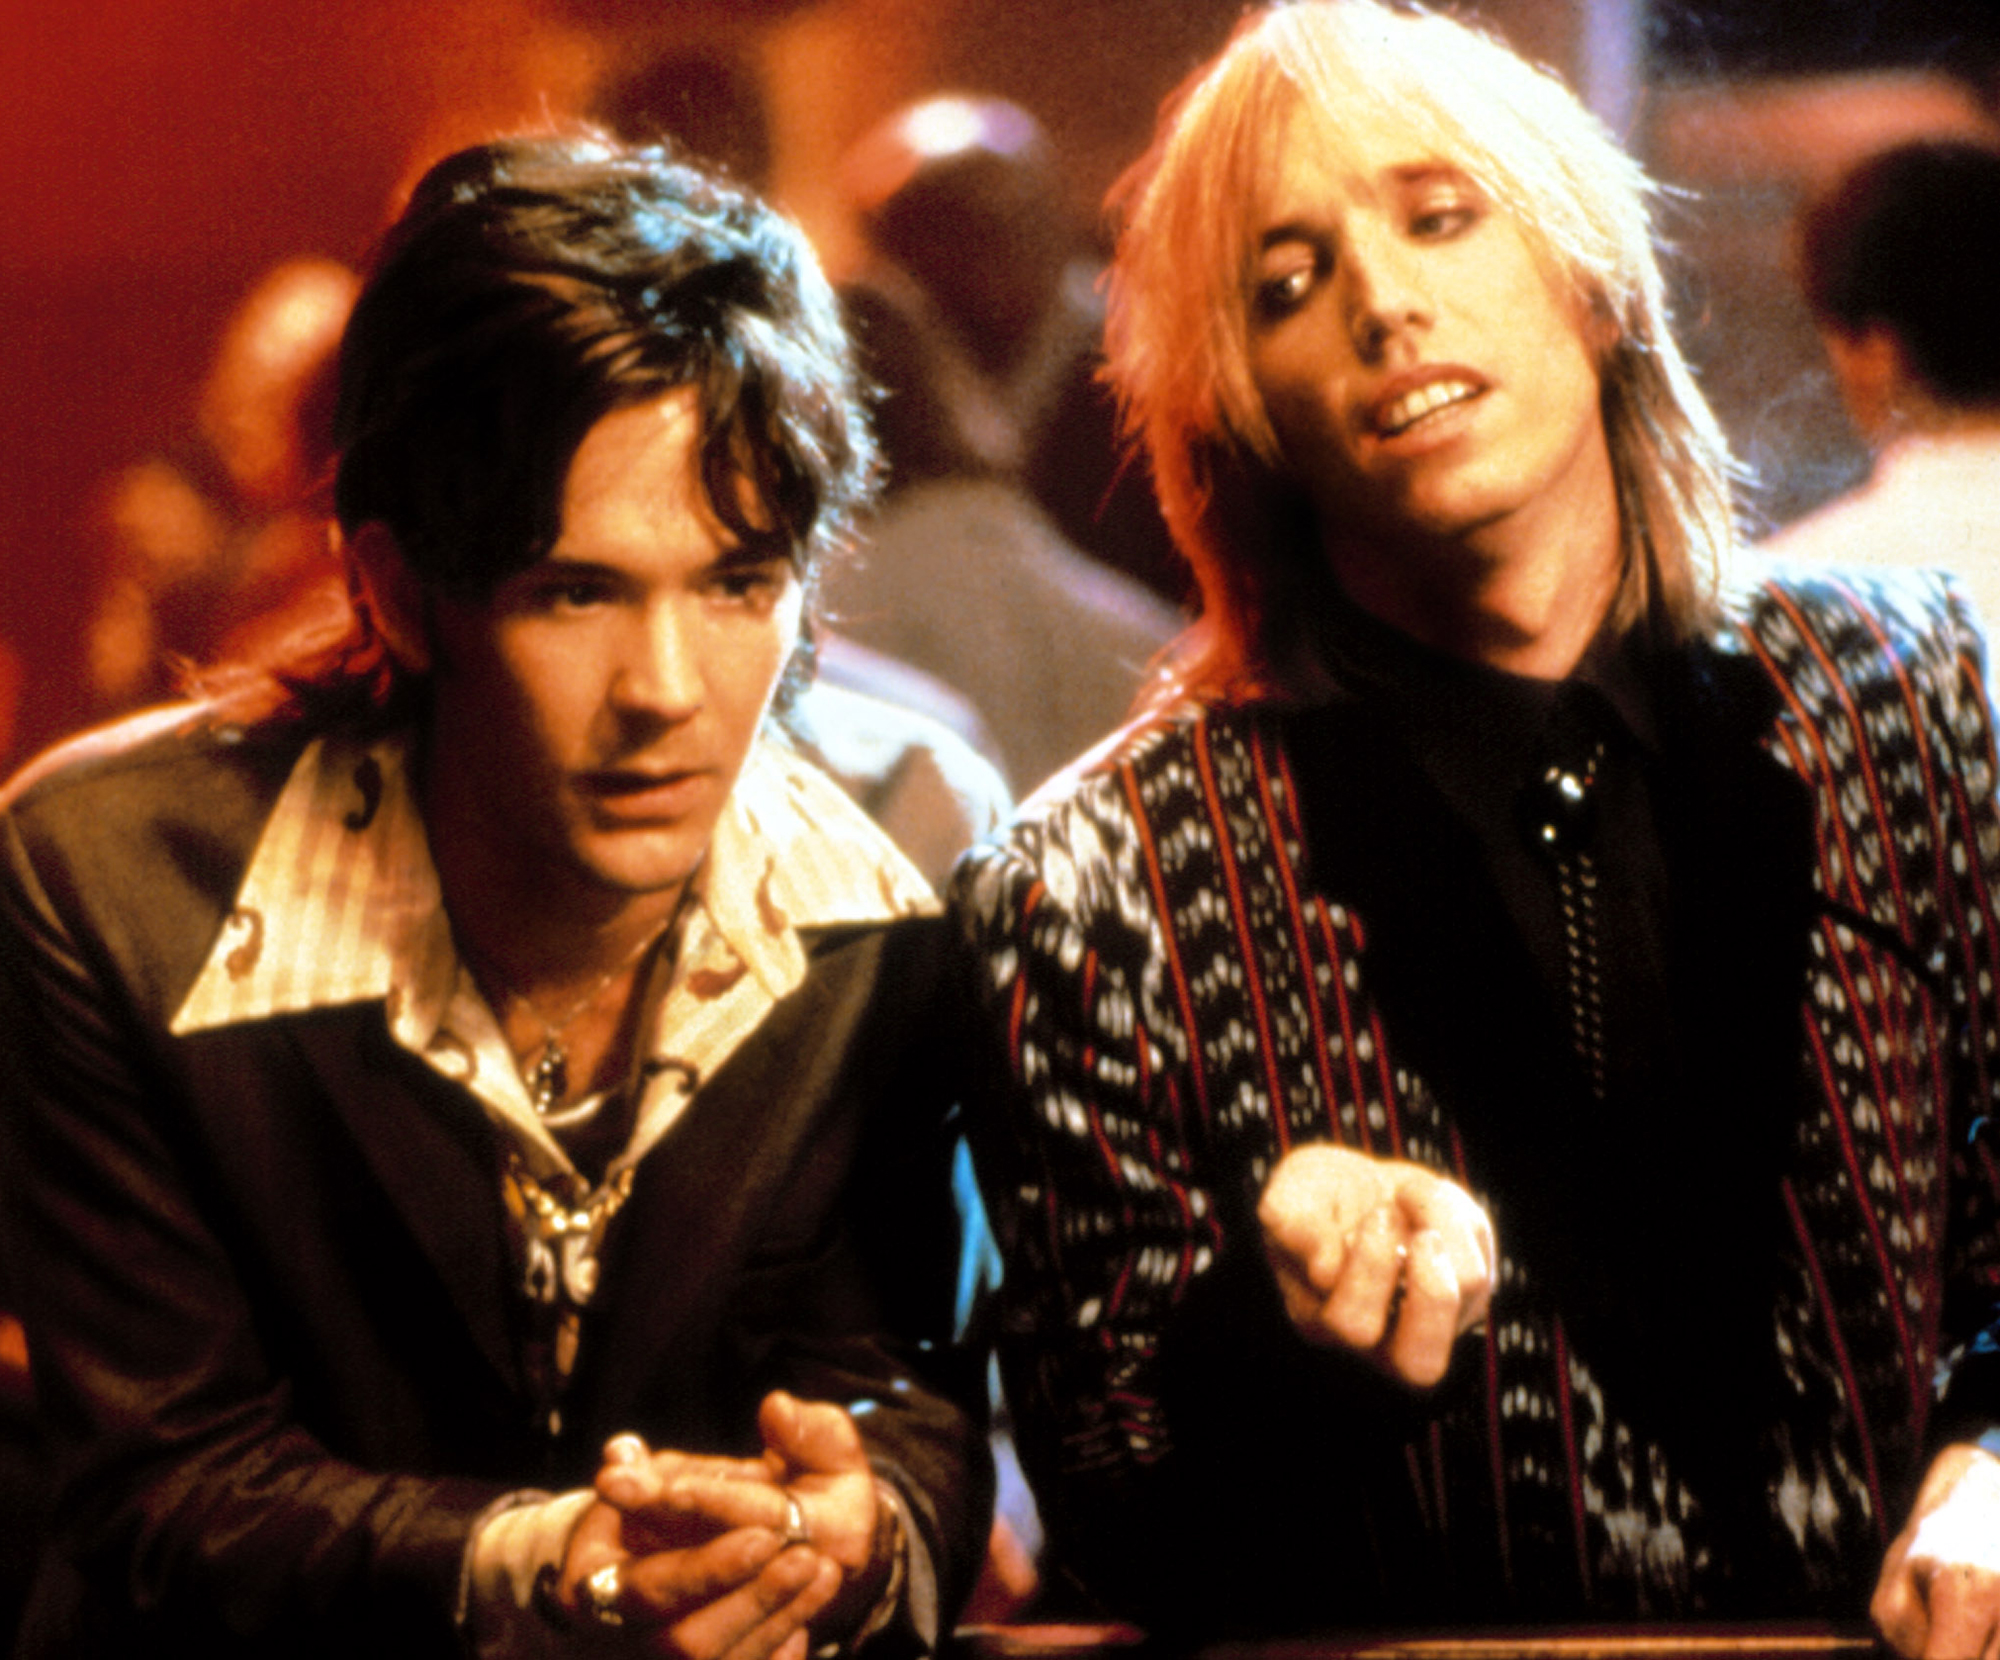 MADE IN HEAVEN, Timothy Hutton, Tom Petty, 1987